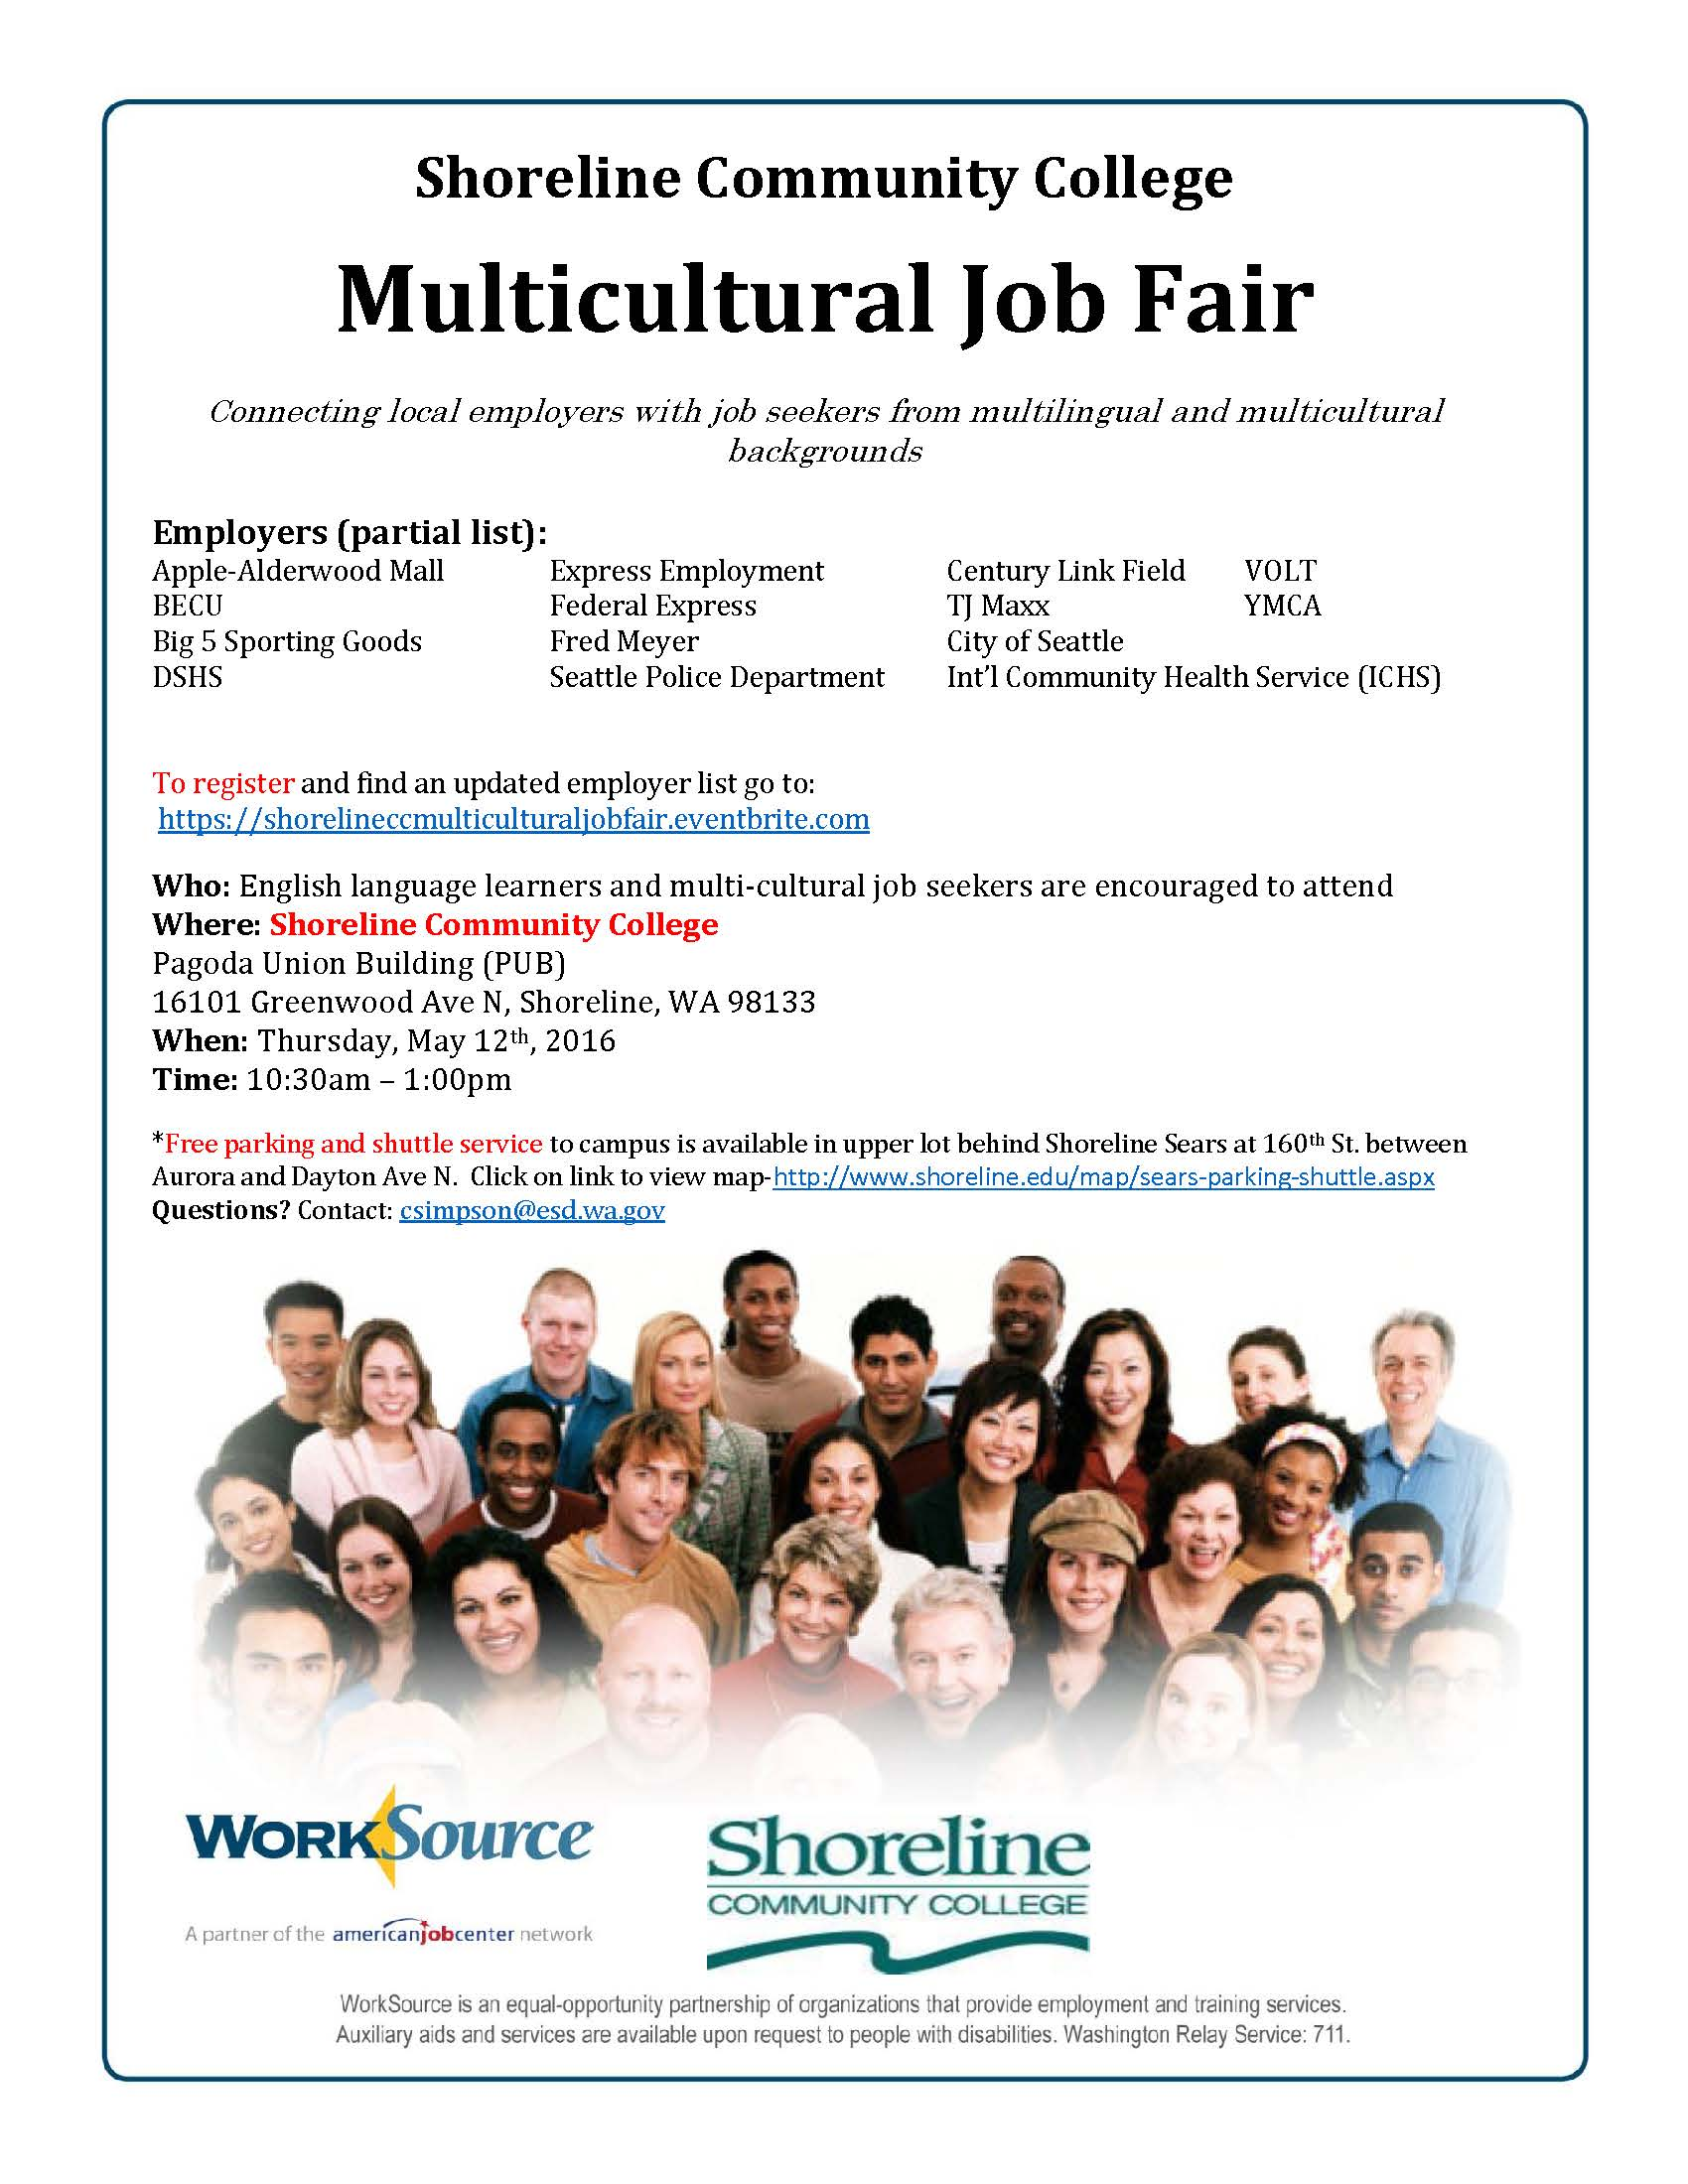 mark your calendars for the multicultural job fair  companies looking to meet job seekers from multilingual and multicultural backgrounds will be on campus thurs 12 from 10 30 a m 1 p m for the